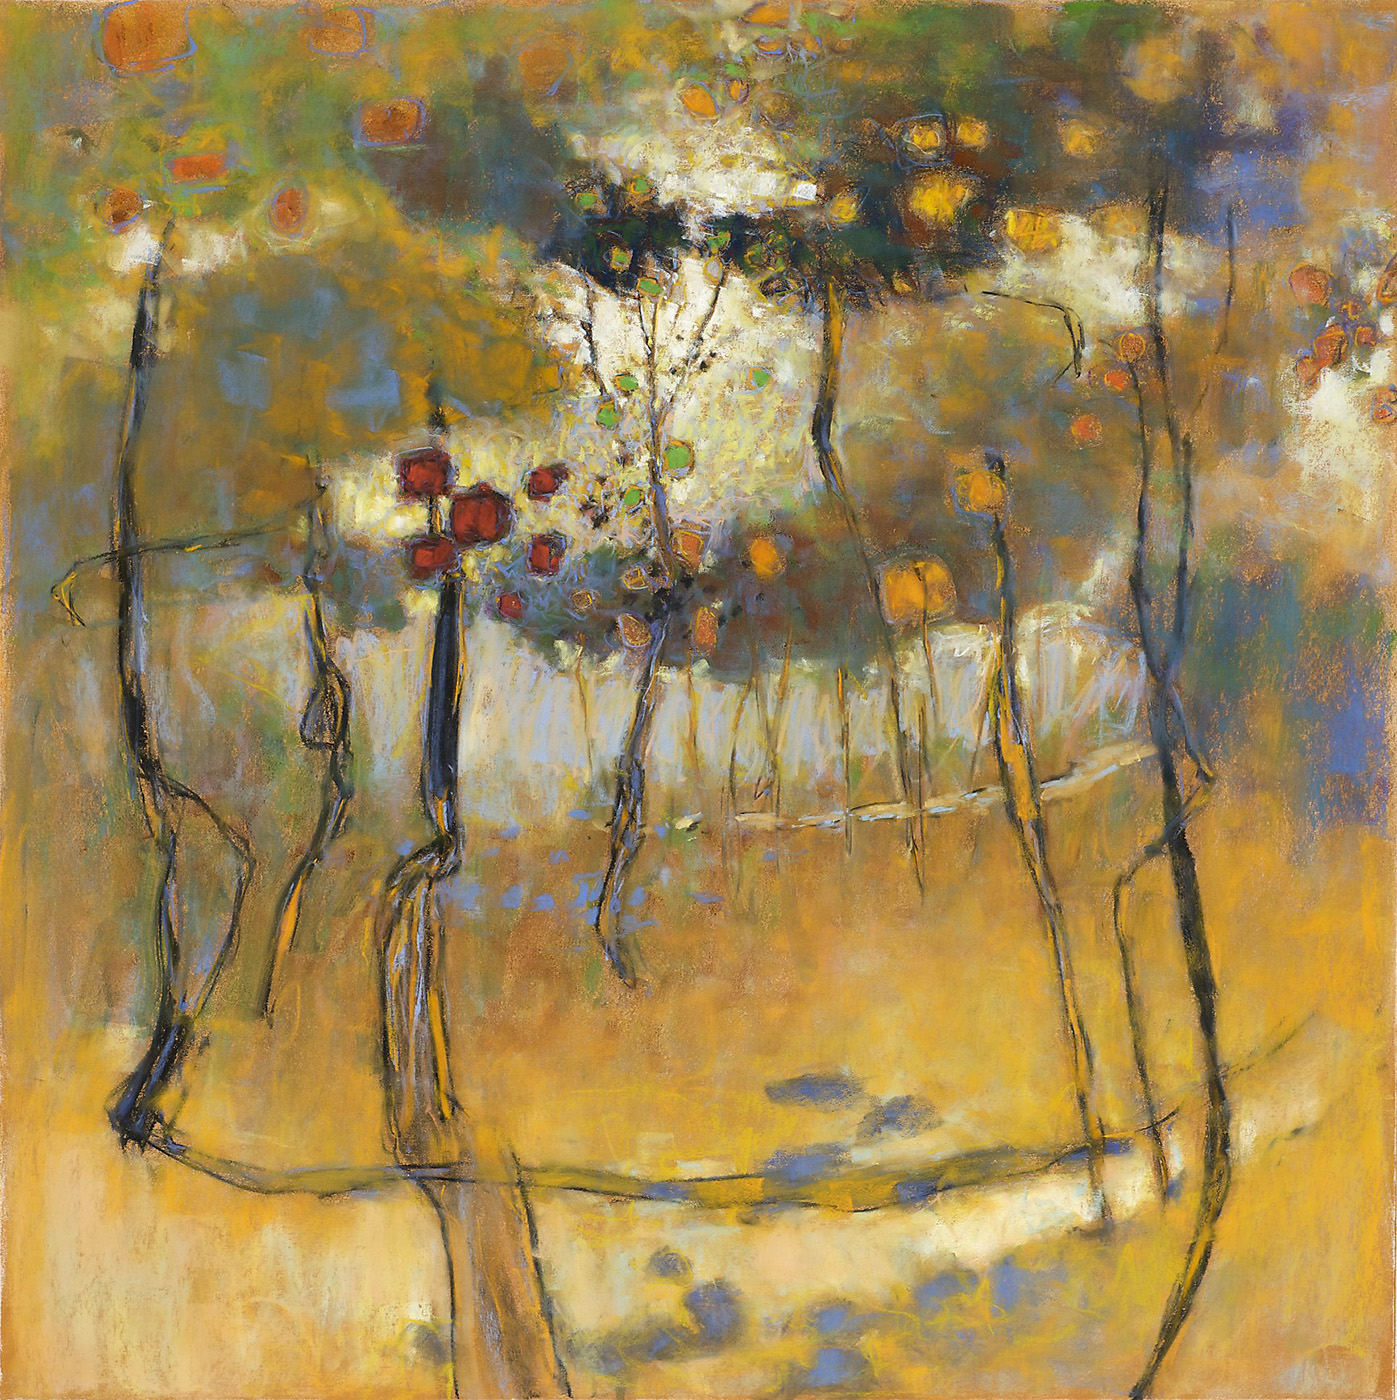 Land of Ecstasy   | pastel on paper | 30 x 30"